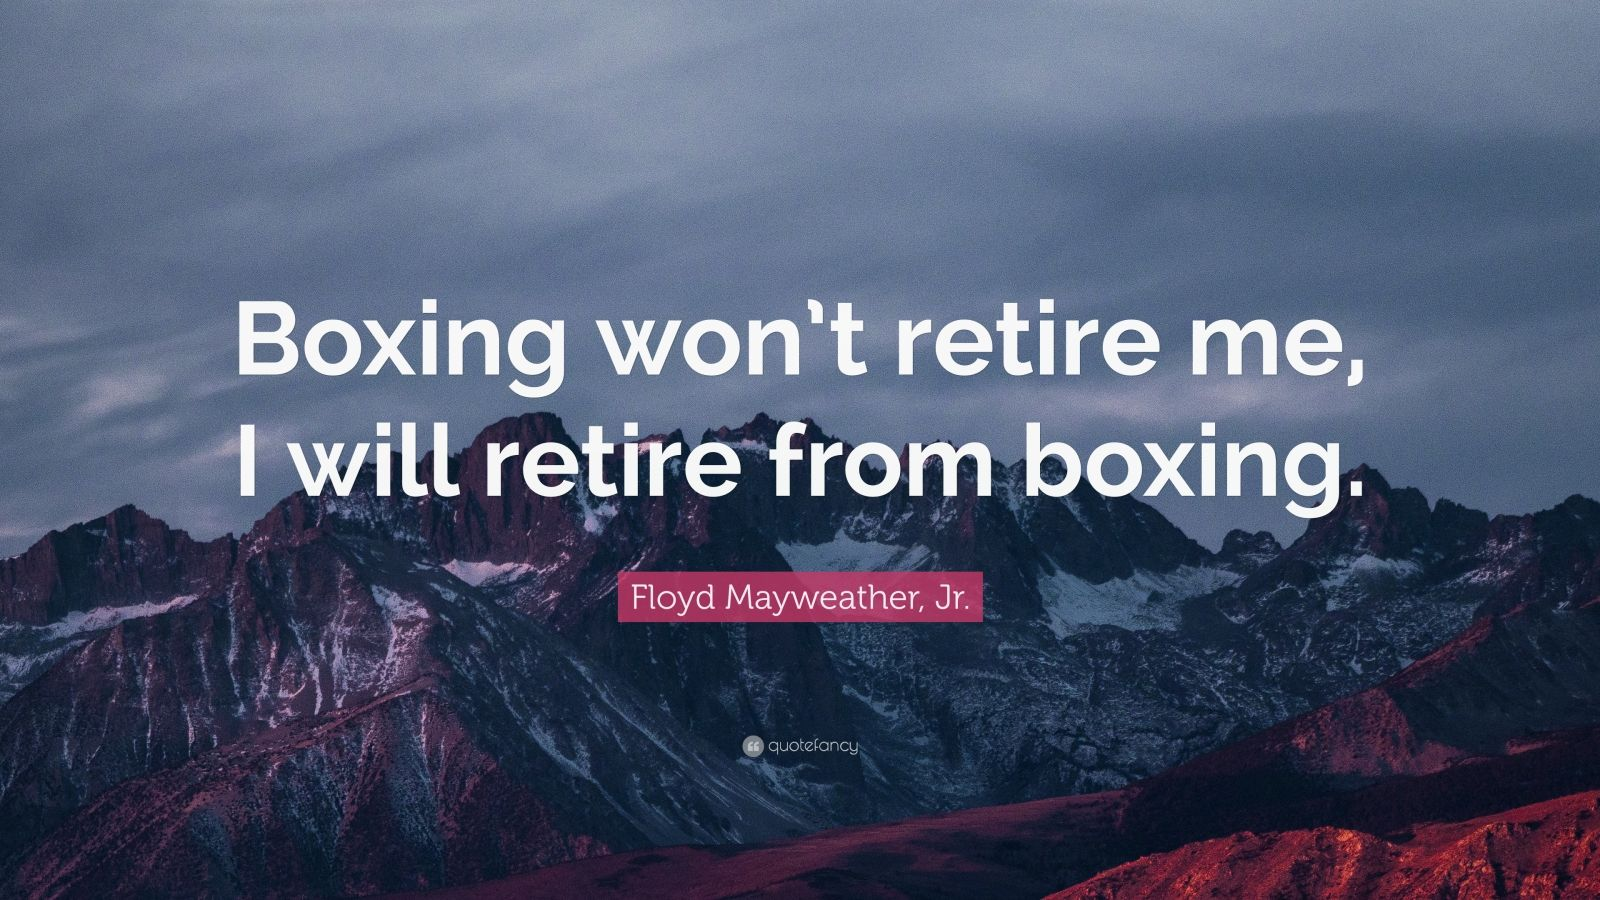 """Floyd Mayweather, Jr. Quote: """"Boxing won't retire me, I will retire from boxing."""""""